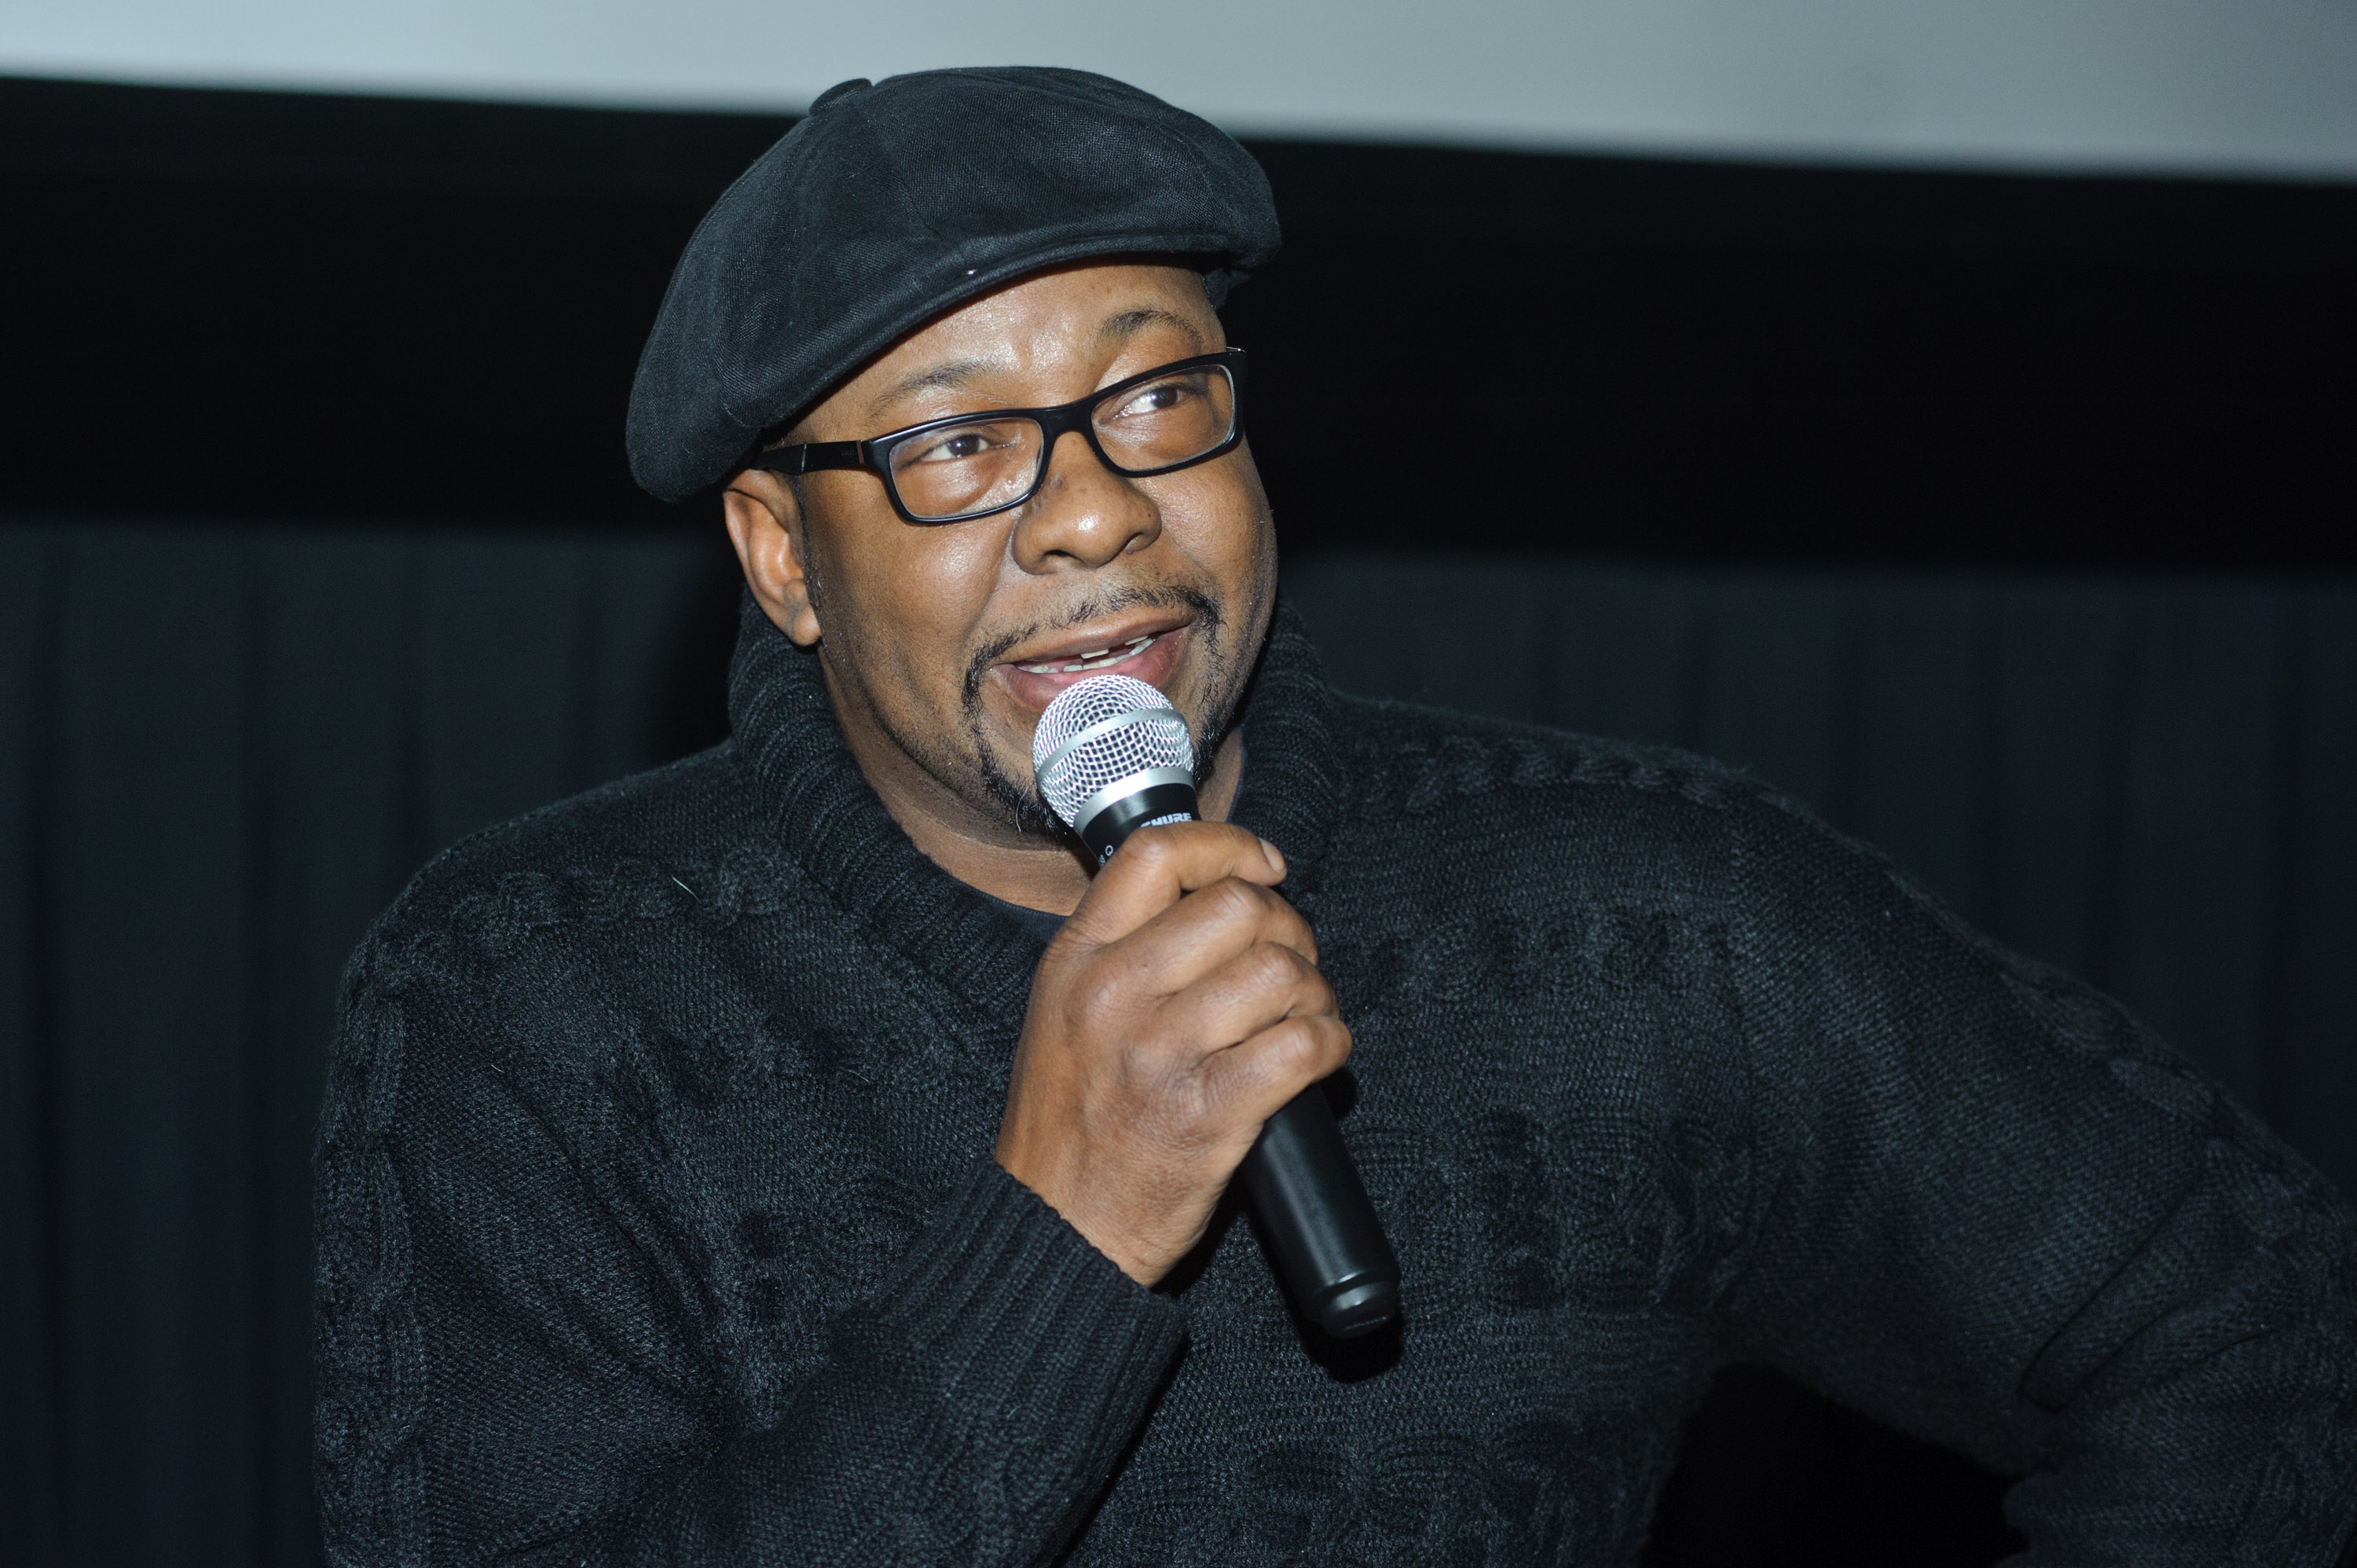 Bobby Brown Blames Nick Gordon For Deaths Of Bobbi Kristina & Whitney